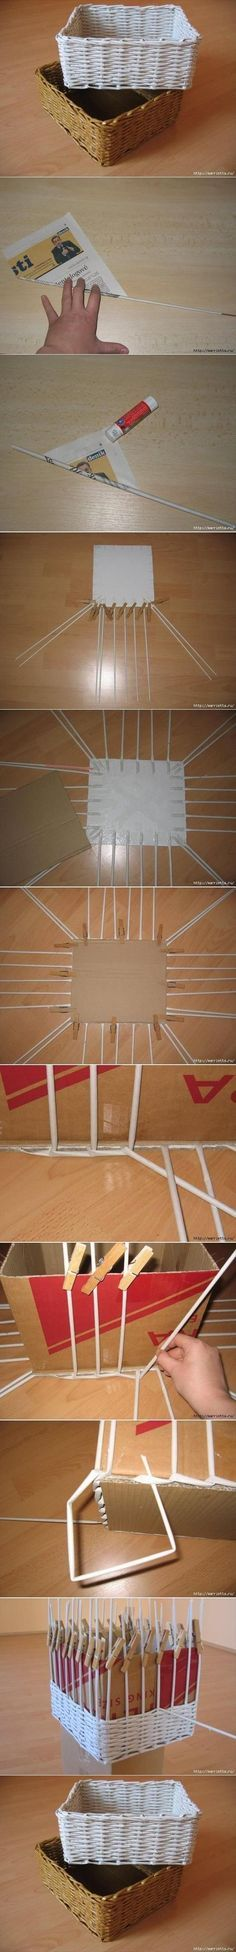 Basket from rolled paper. Step by step